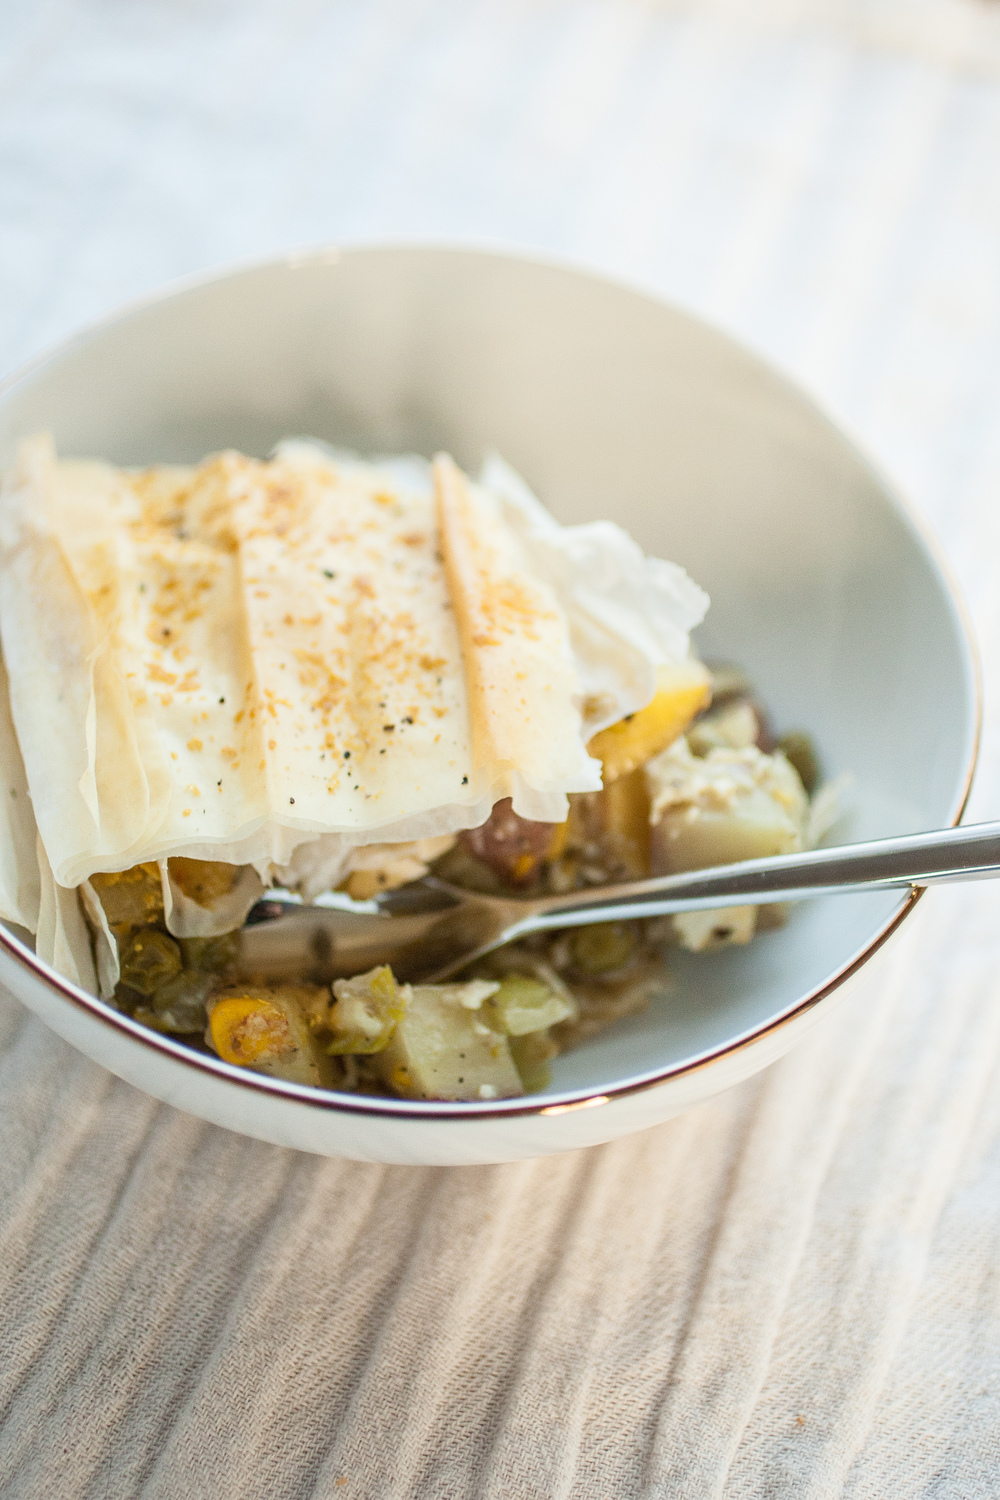 Produce On Parade - Tofu Pot Pie Casserole - A sturdy and healthy tofu pot pie casserole made with phyllo dough and common vegetables. Quick and easy for a weekday dinner!